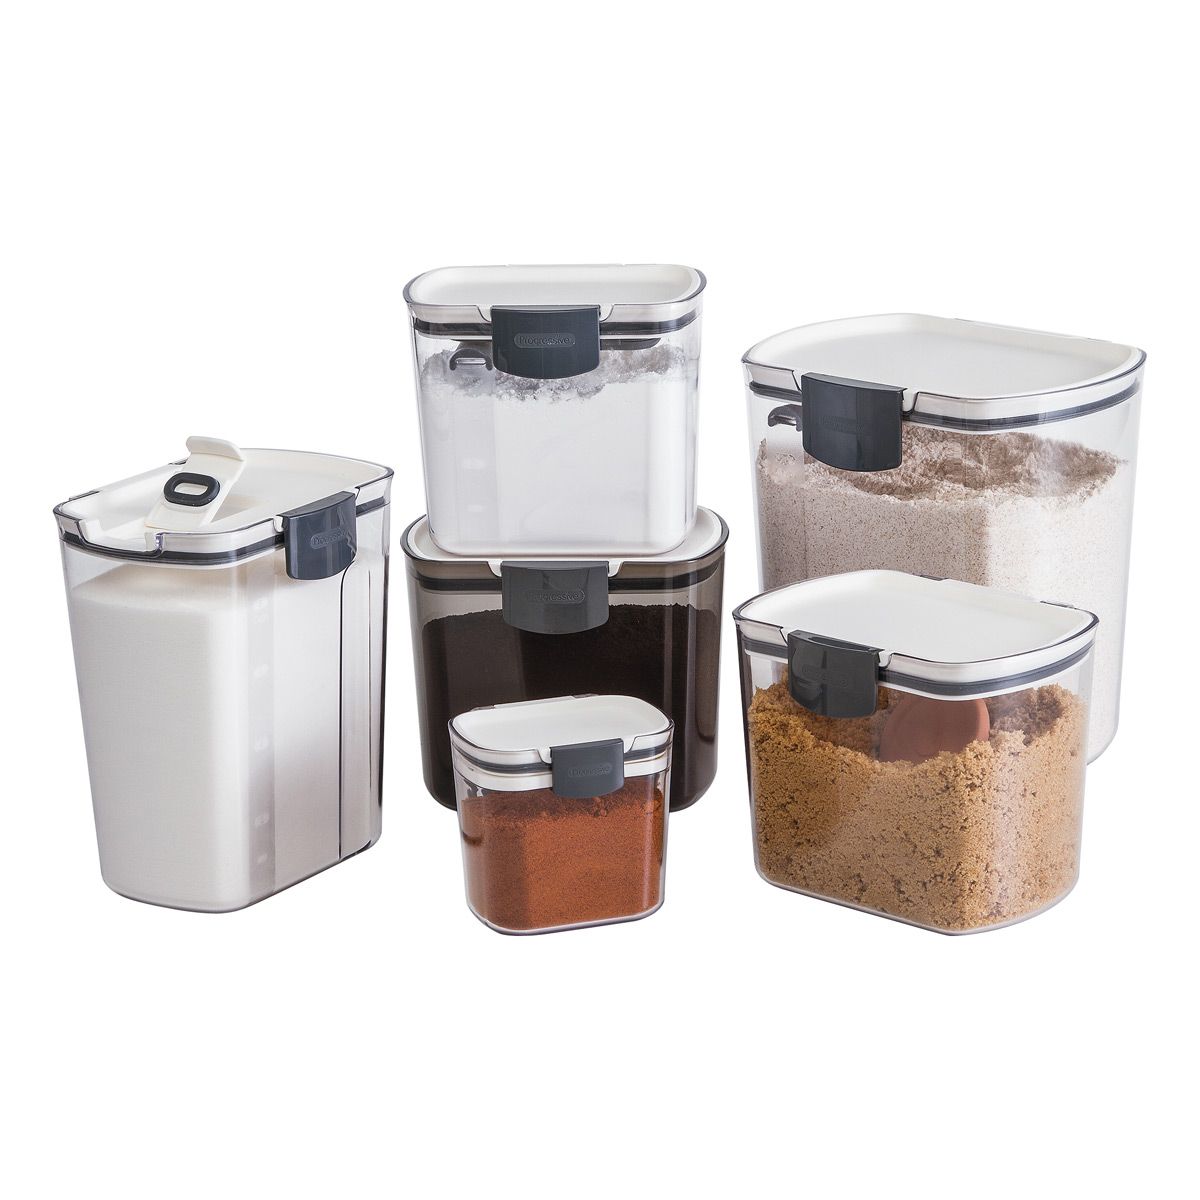 Flour Container  sc 1 st  The Container Store & ProKeeper 4 qt. Flour Container | The Container Store